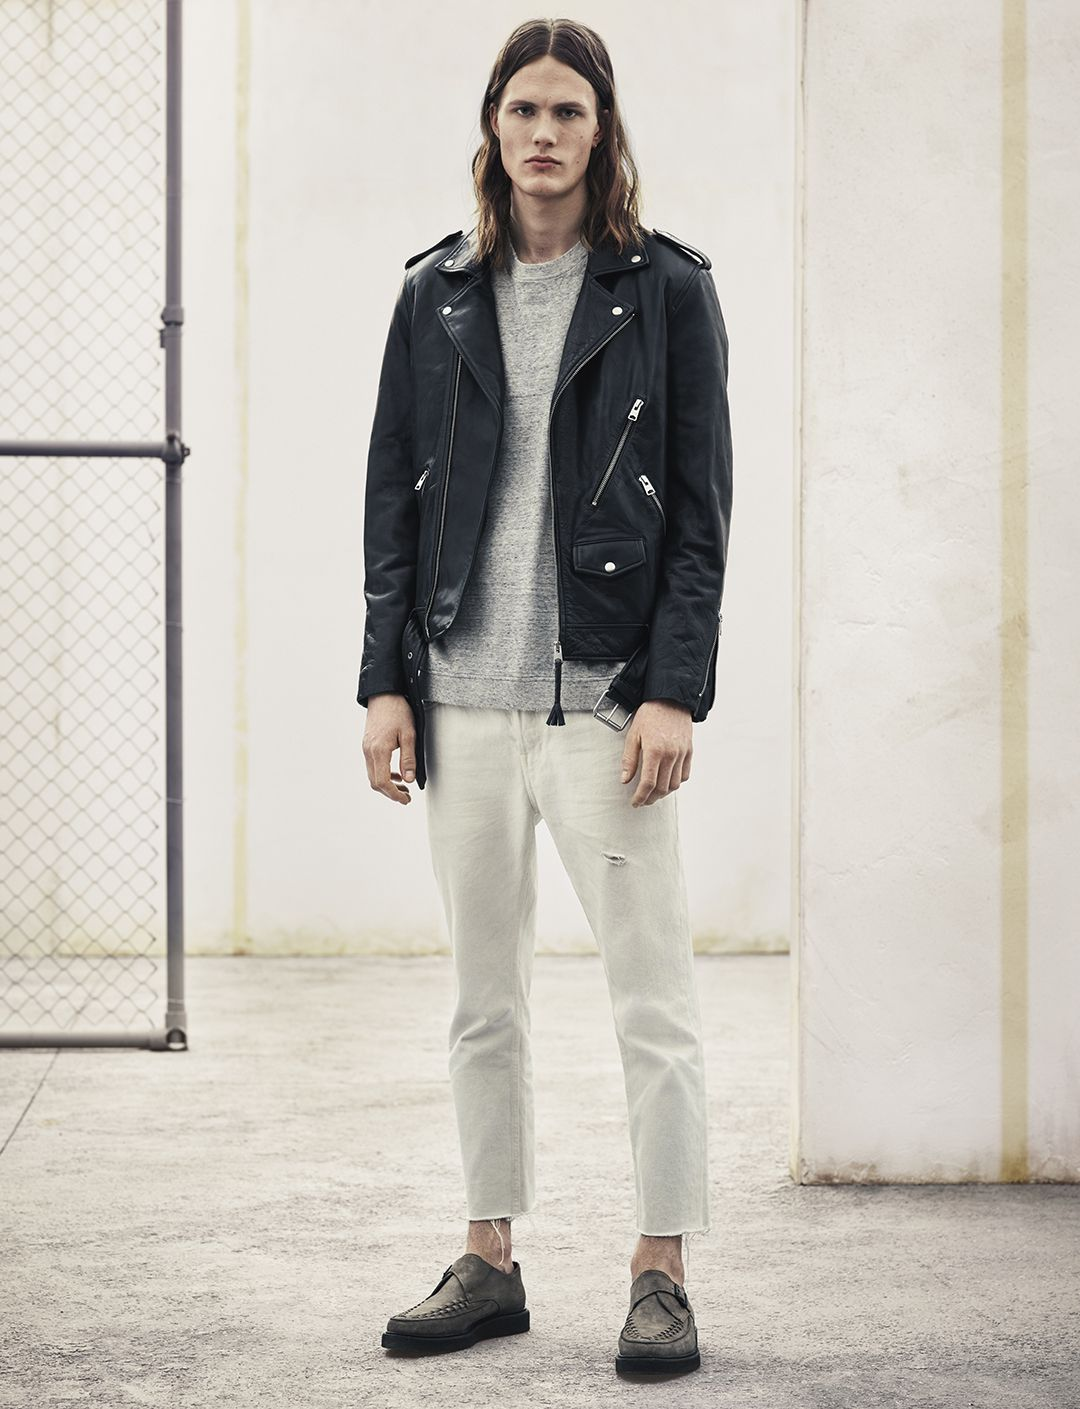 AllSaints Men's April Lookbook Look 1: Brivio Biker, Etrain Ls Crew, Armstrong Pistol, Arc Shoe